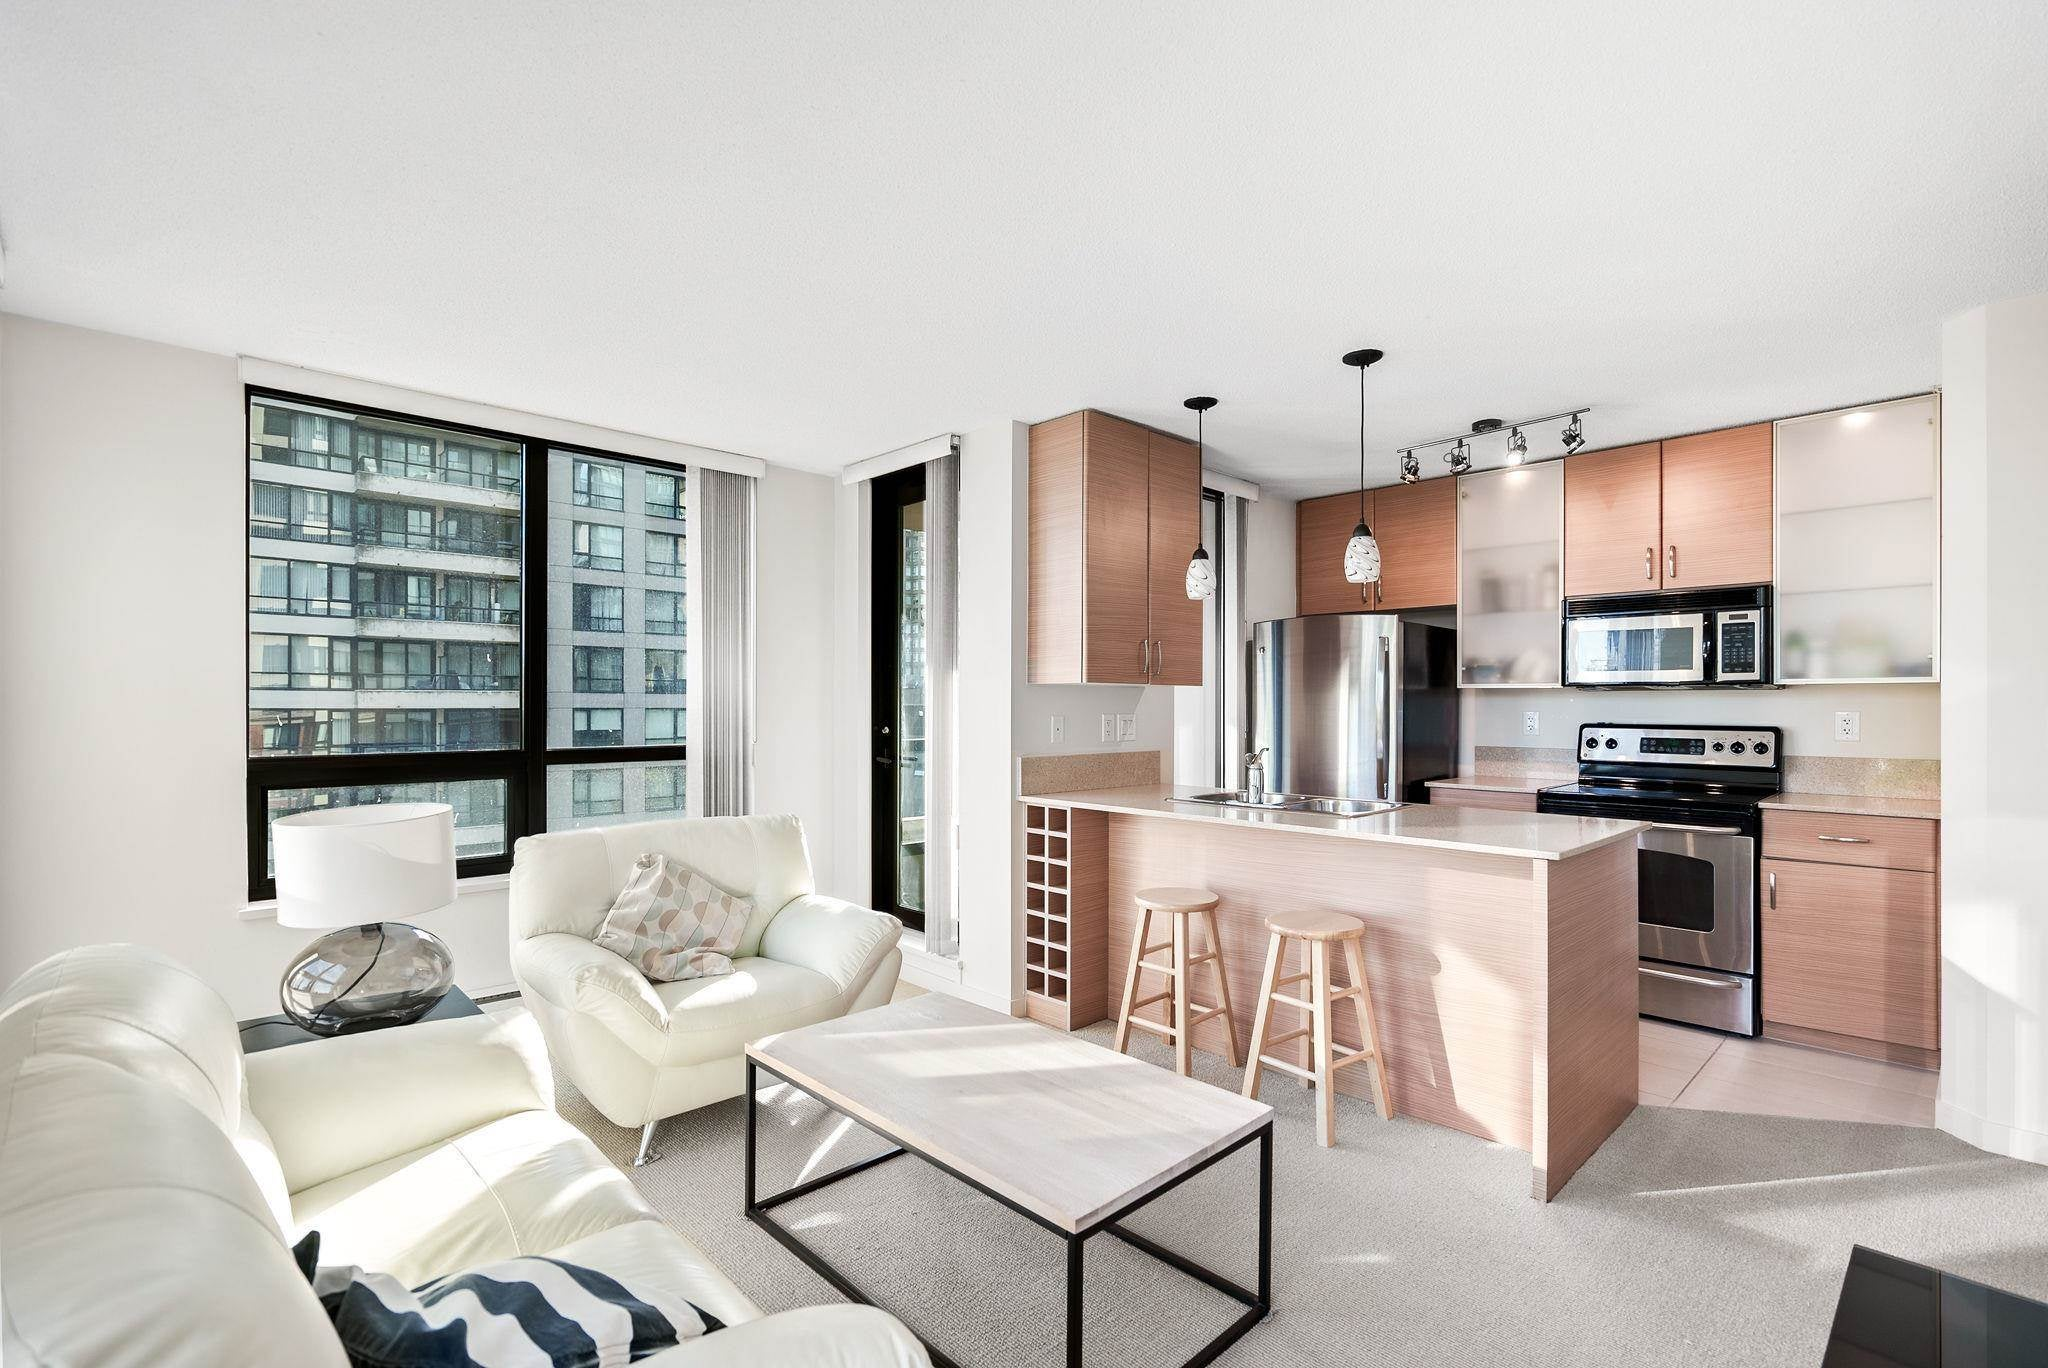 704 909 MAINLAND STREET - Yaletown Apartment/Condo for sale, 1 Bedroom (R2604846) - #1